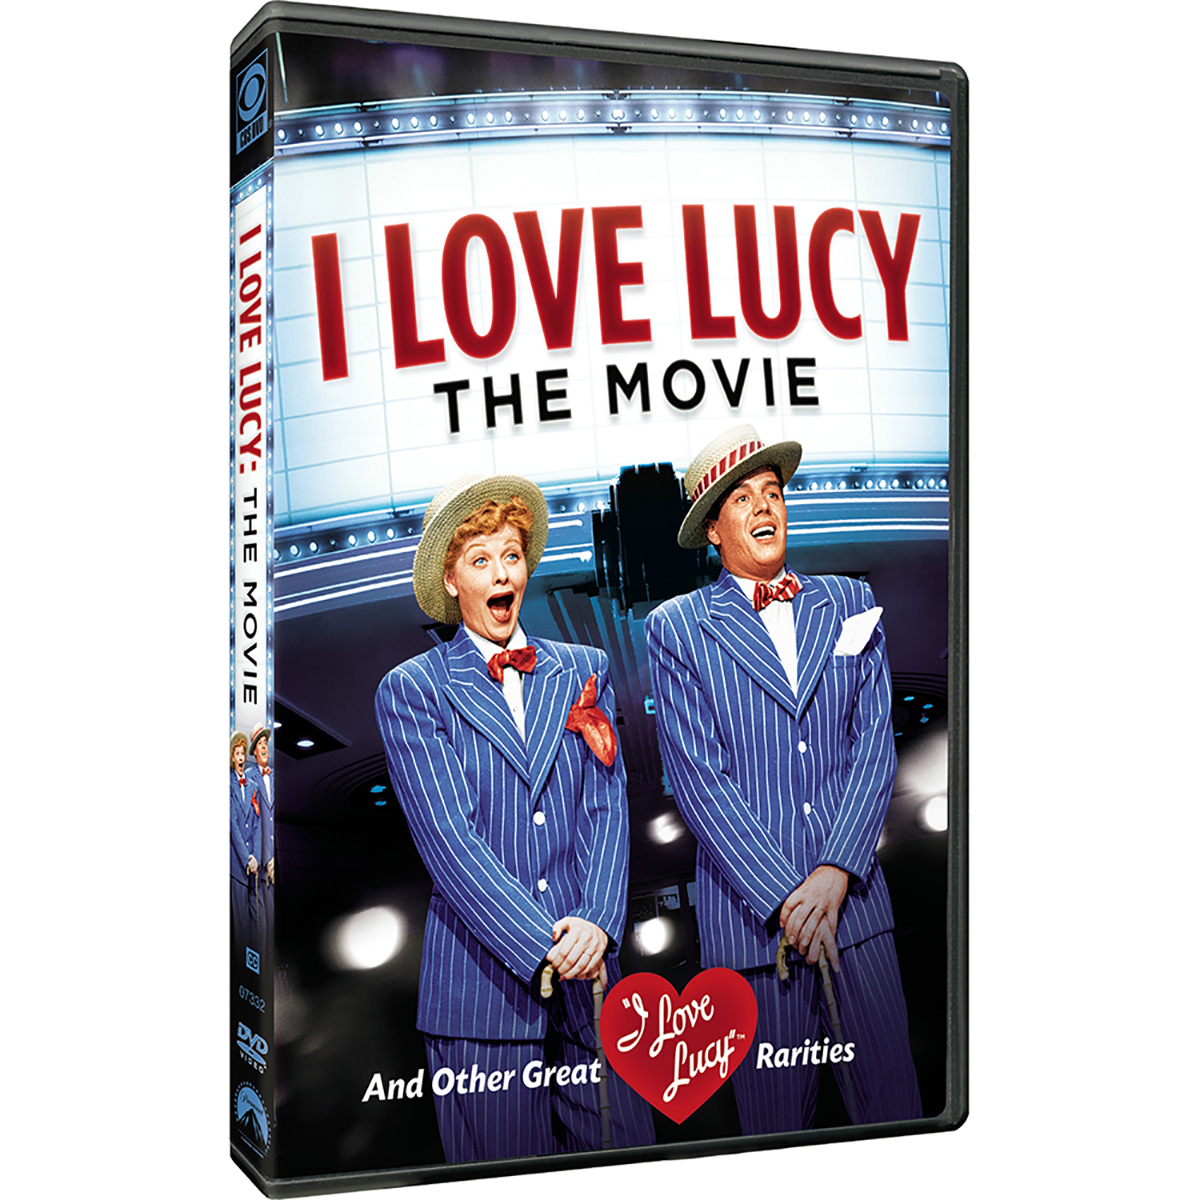 I Love Lucy: The Movie & Other Great Rarities DVD -  DVDs & Videos 4285-261947